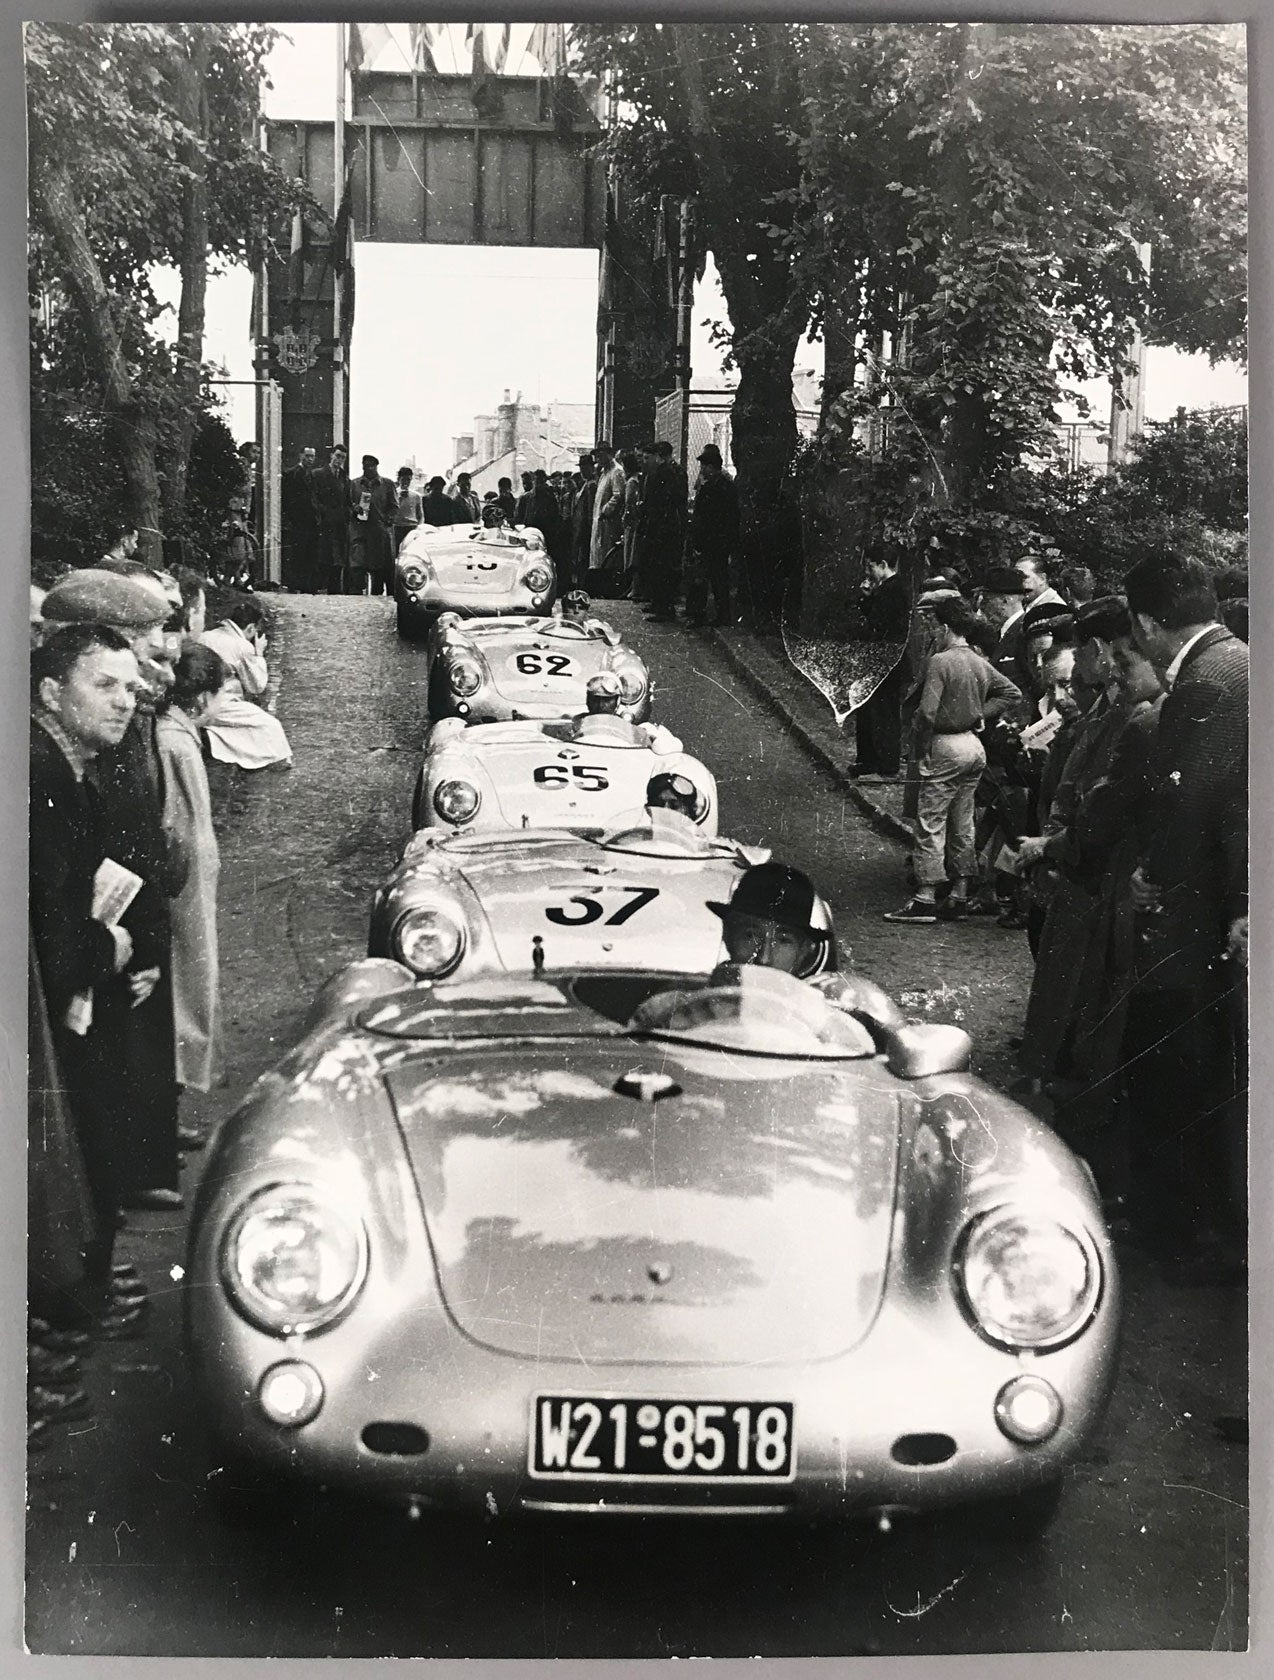 Porsche 550 Spyder parade arrives at Le Mans in 1955 photo - $225.00